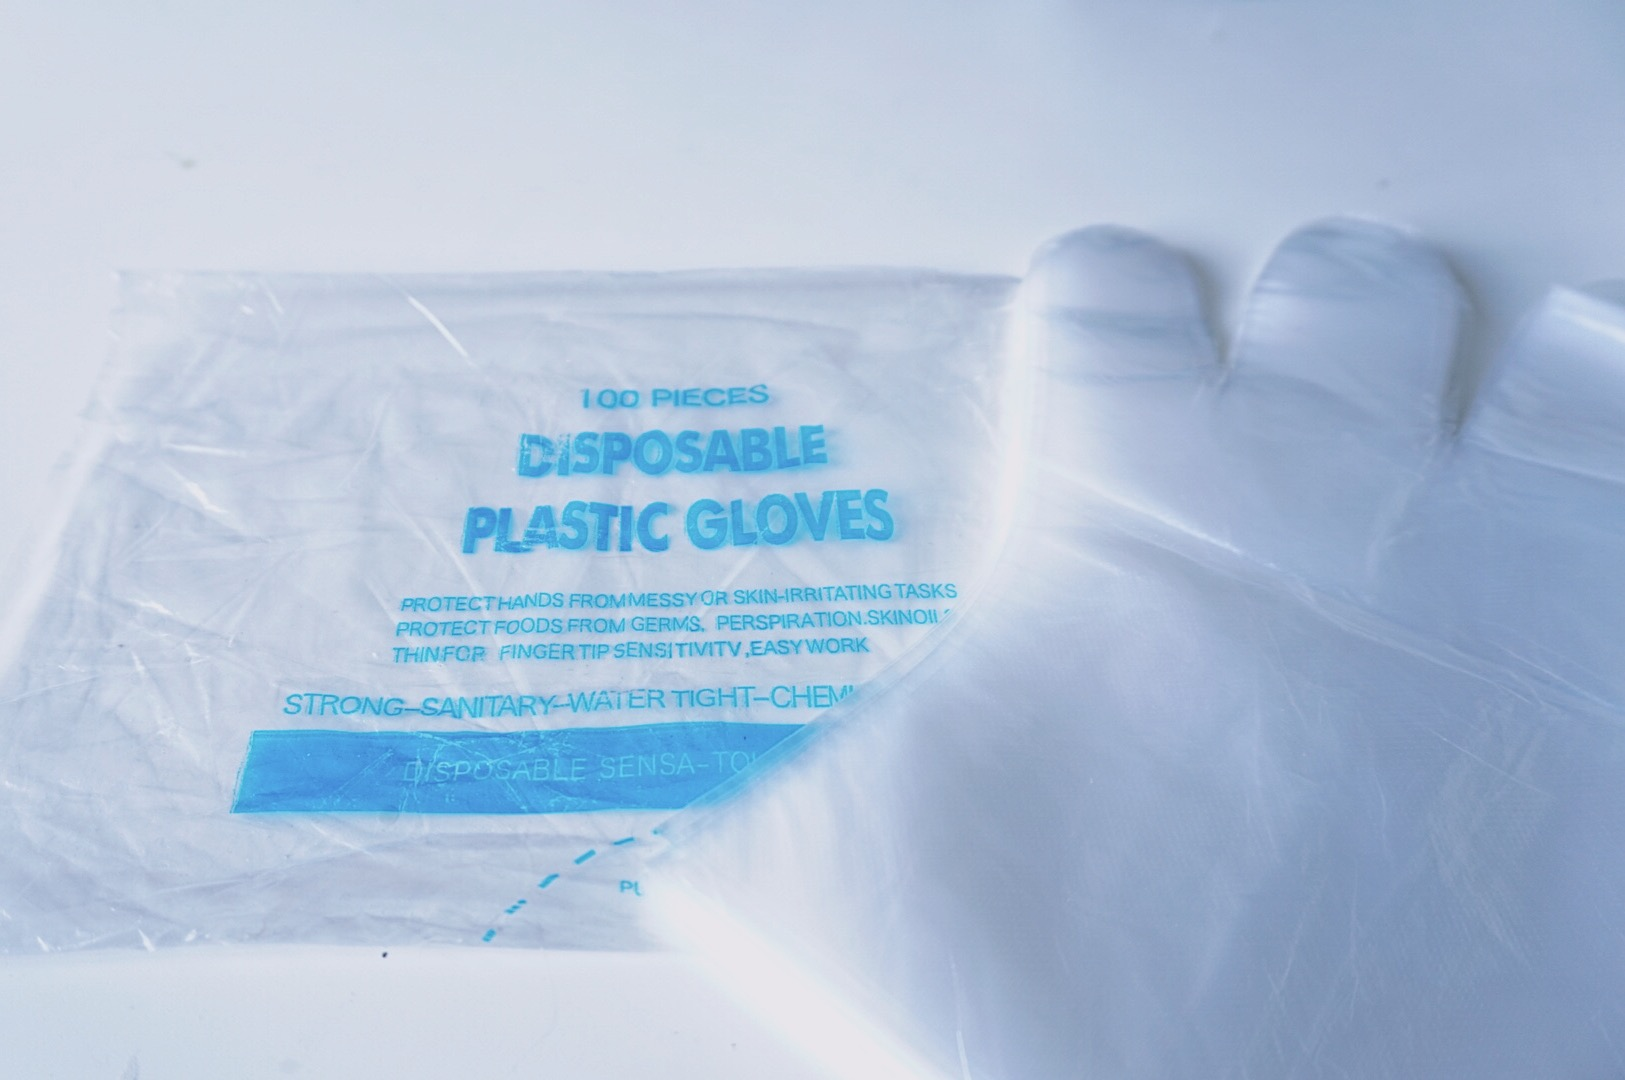 Disposable gloves foil gloves 100 pcs pack